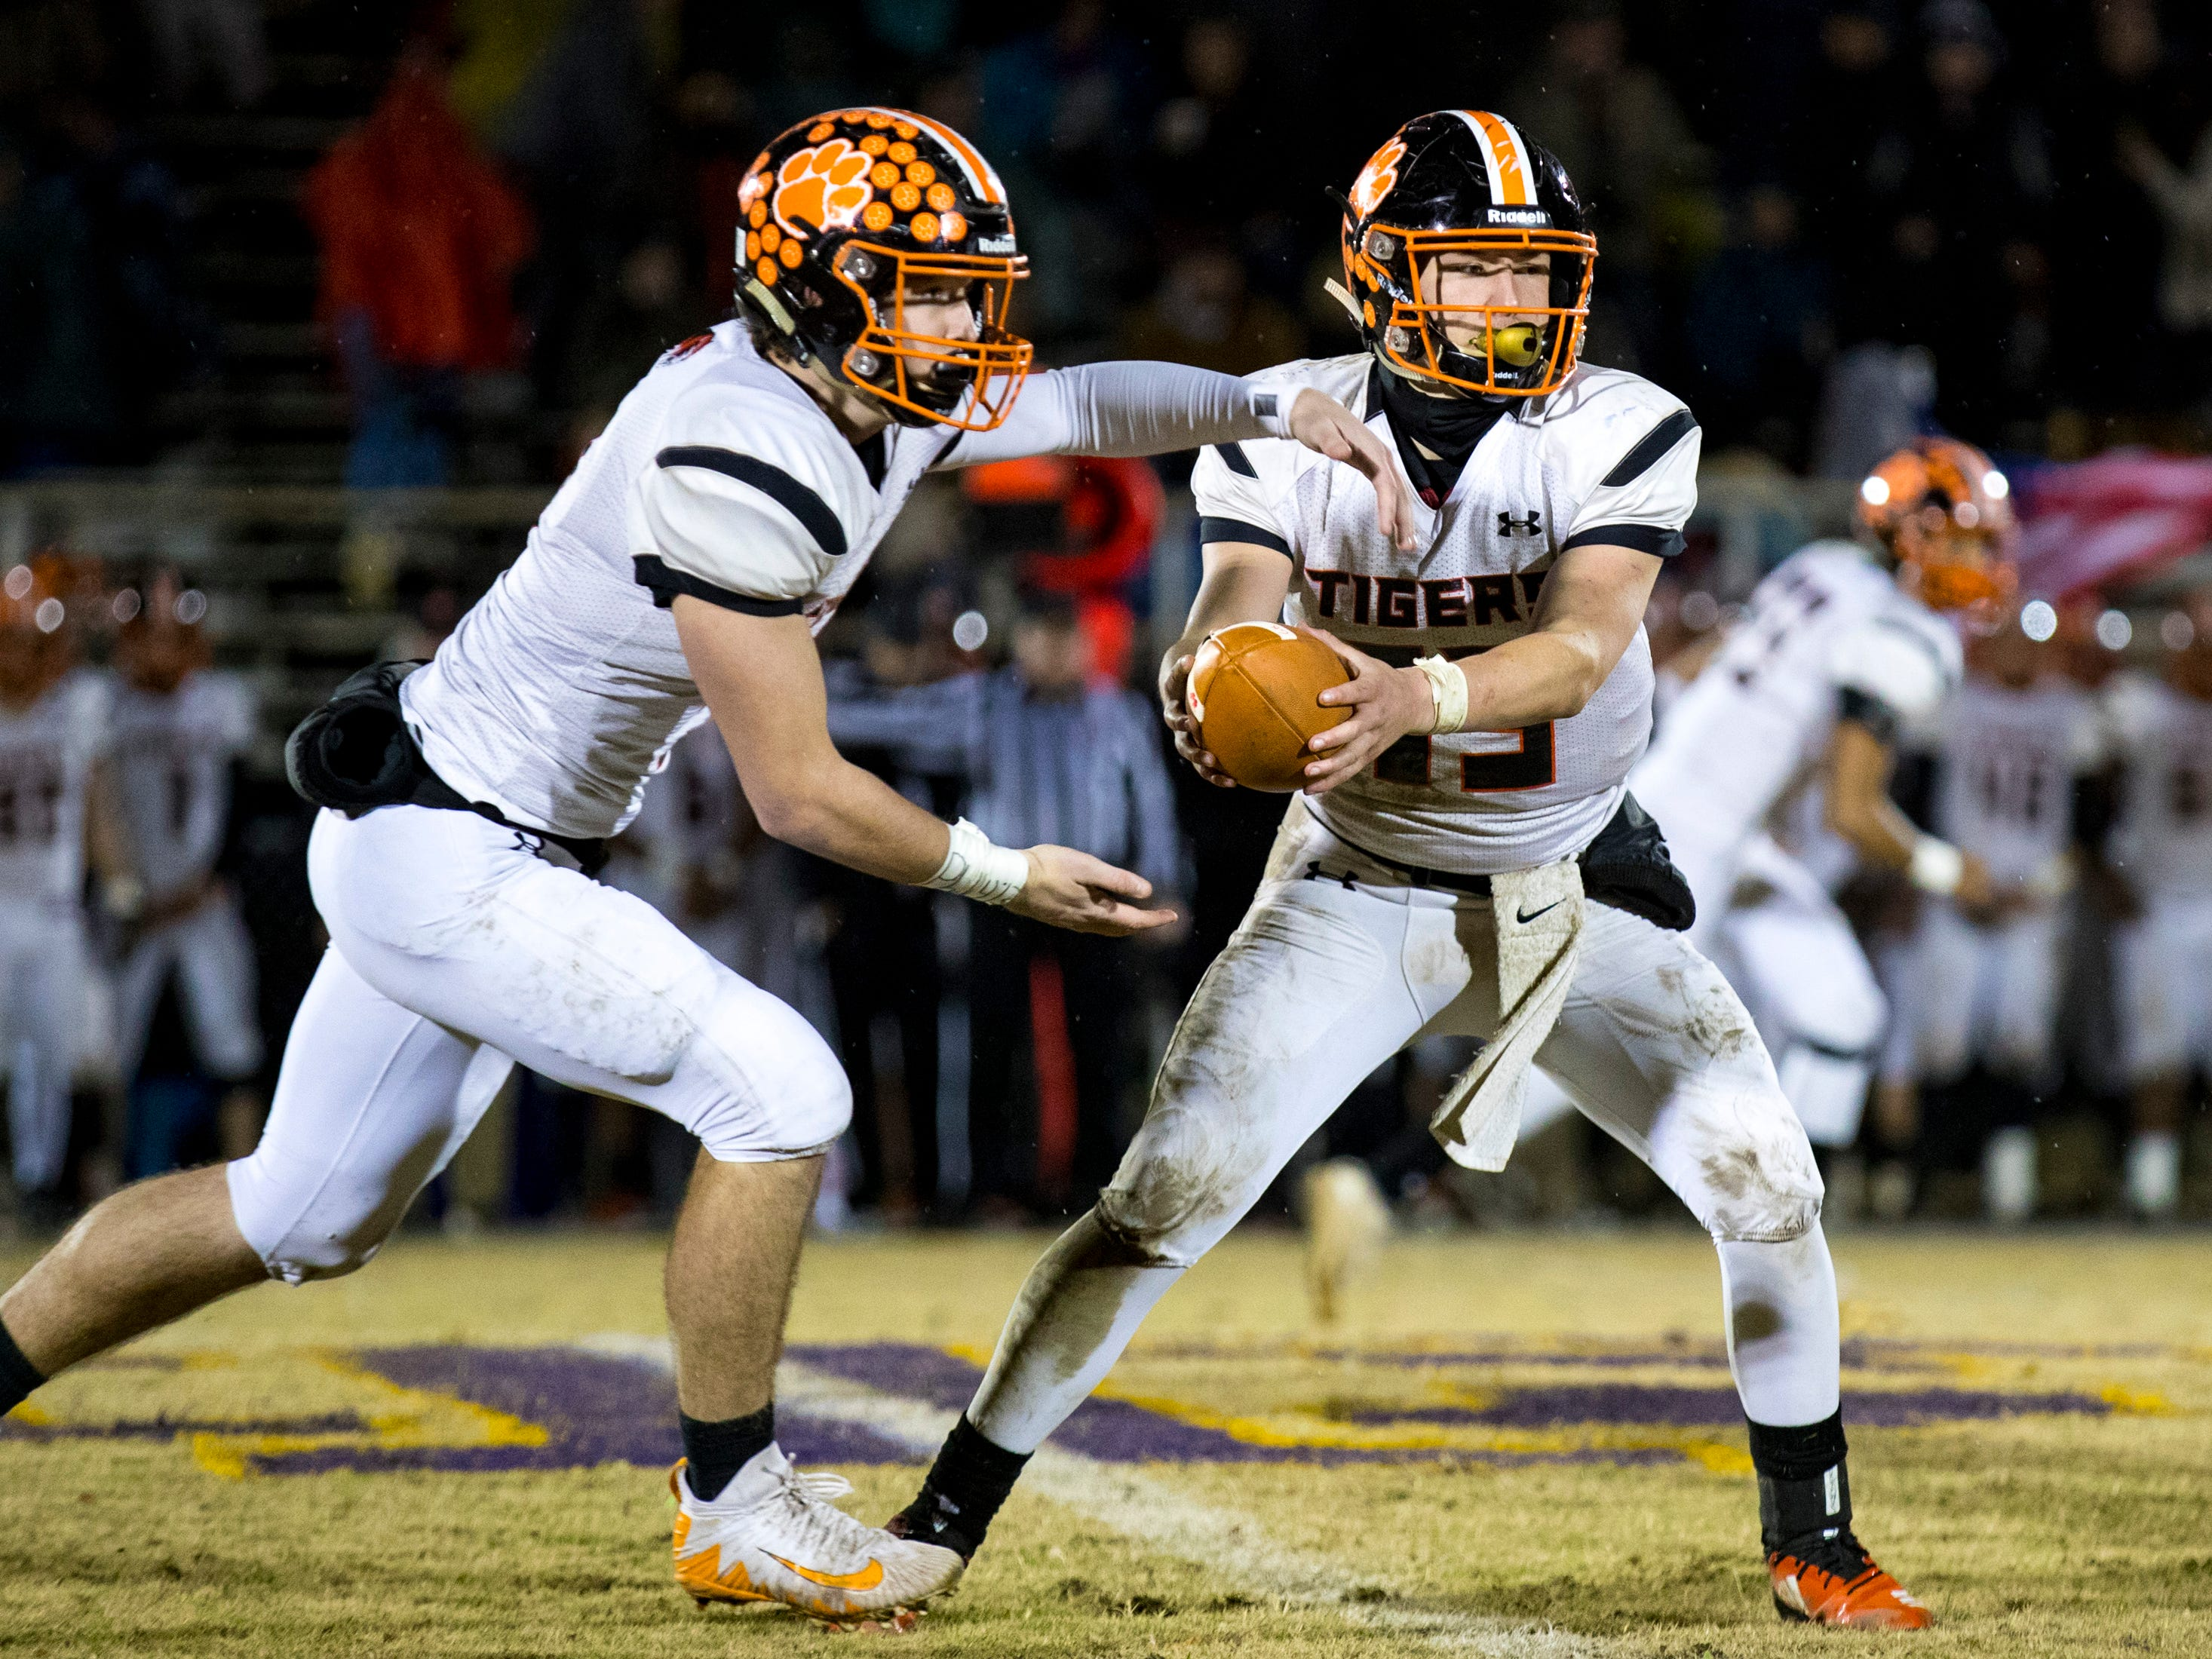 Meigs County's Aaron Swafford (19) fakes a handoff during Trousdale County's game against Meigs County at Jim Satterfield Stadium in Hartsville on Friday, Nov. 23, 2018.